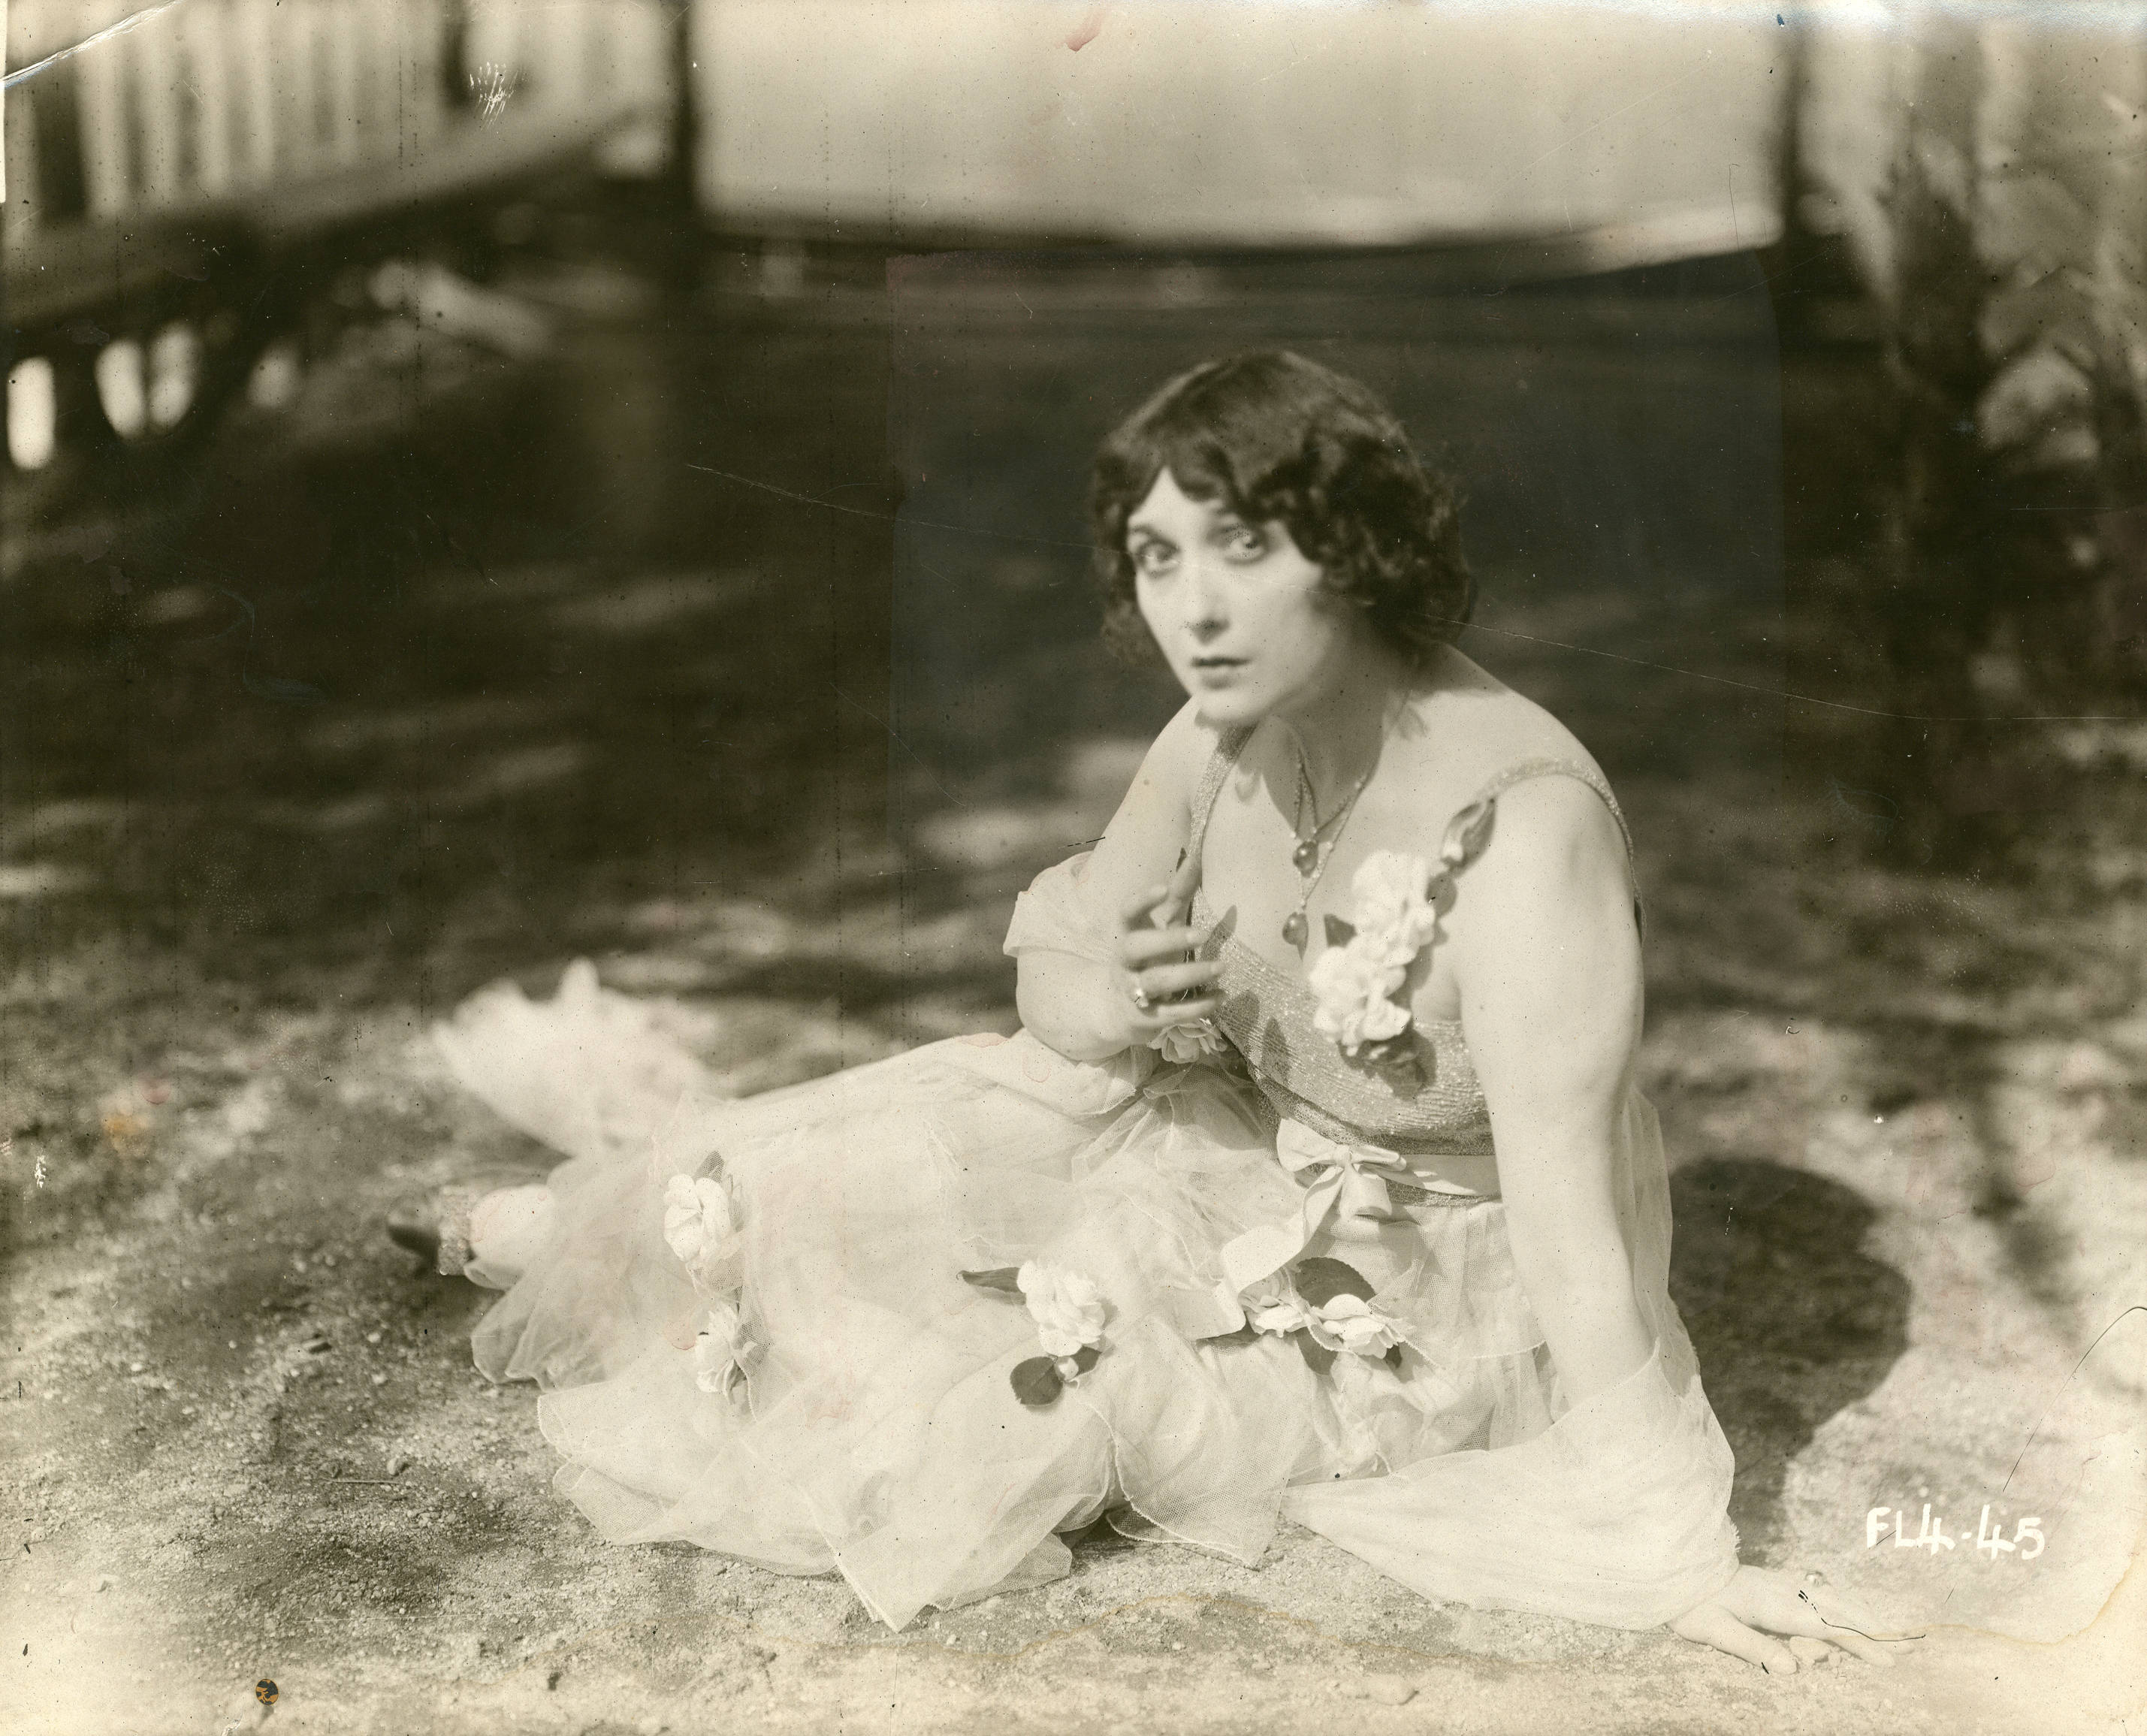 File:Silent film actress and opera singer Lina Cavalieri (SAYRE 19545).jpg  - Wikimedia Commons